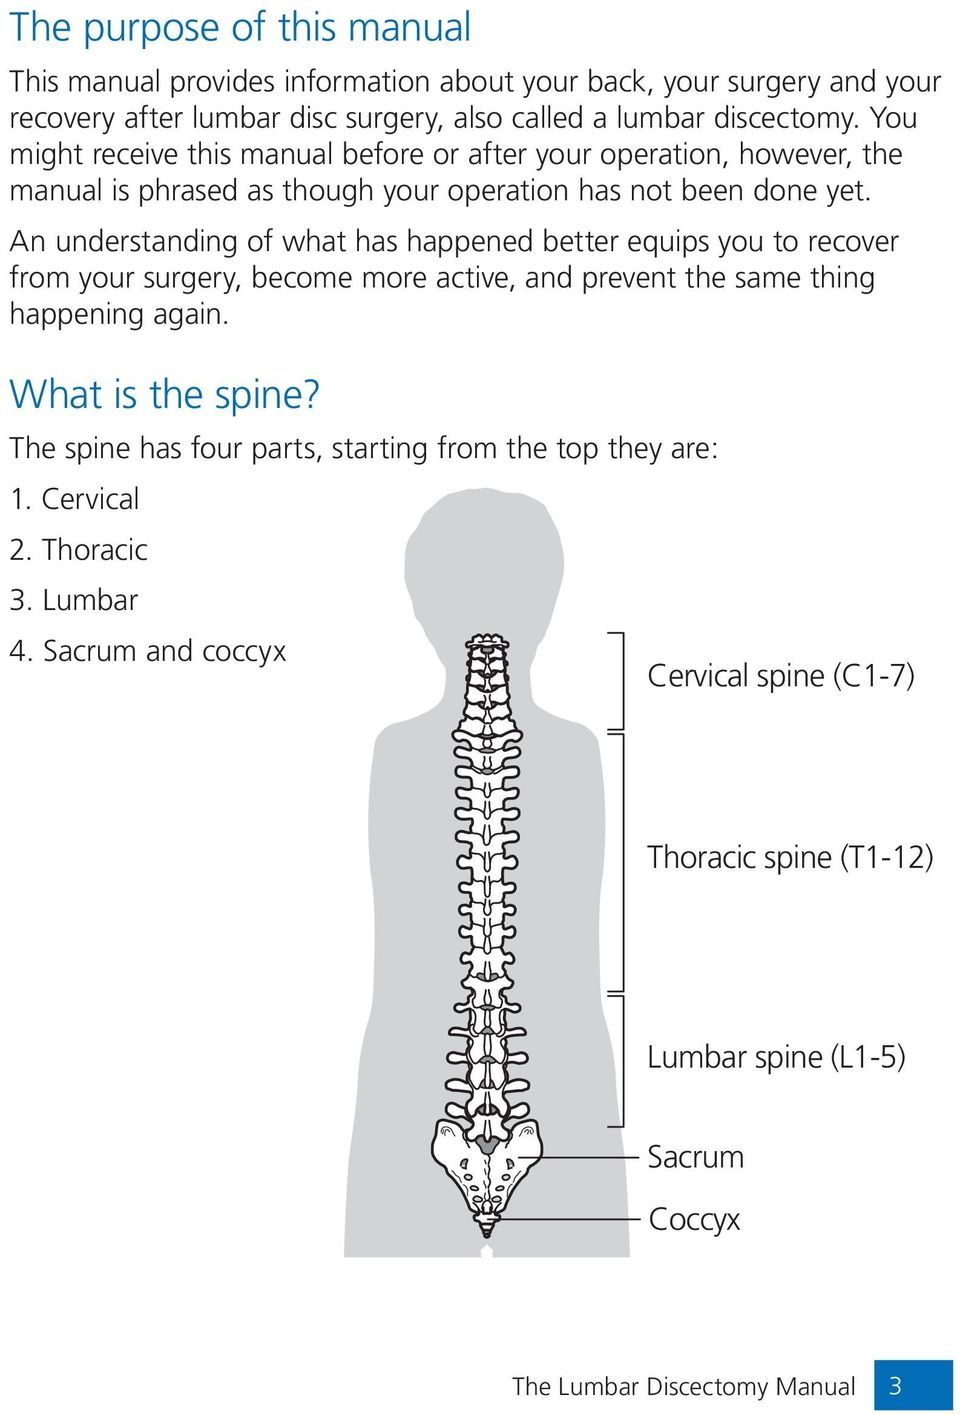 An understanding of what has happened better equips you to recover from your surgery, become more active, and prevent the same thing happening again. What is the spine?